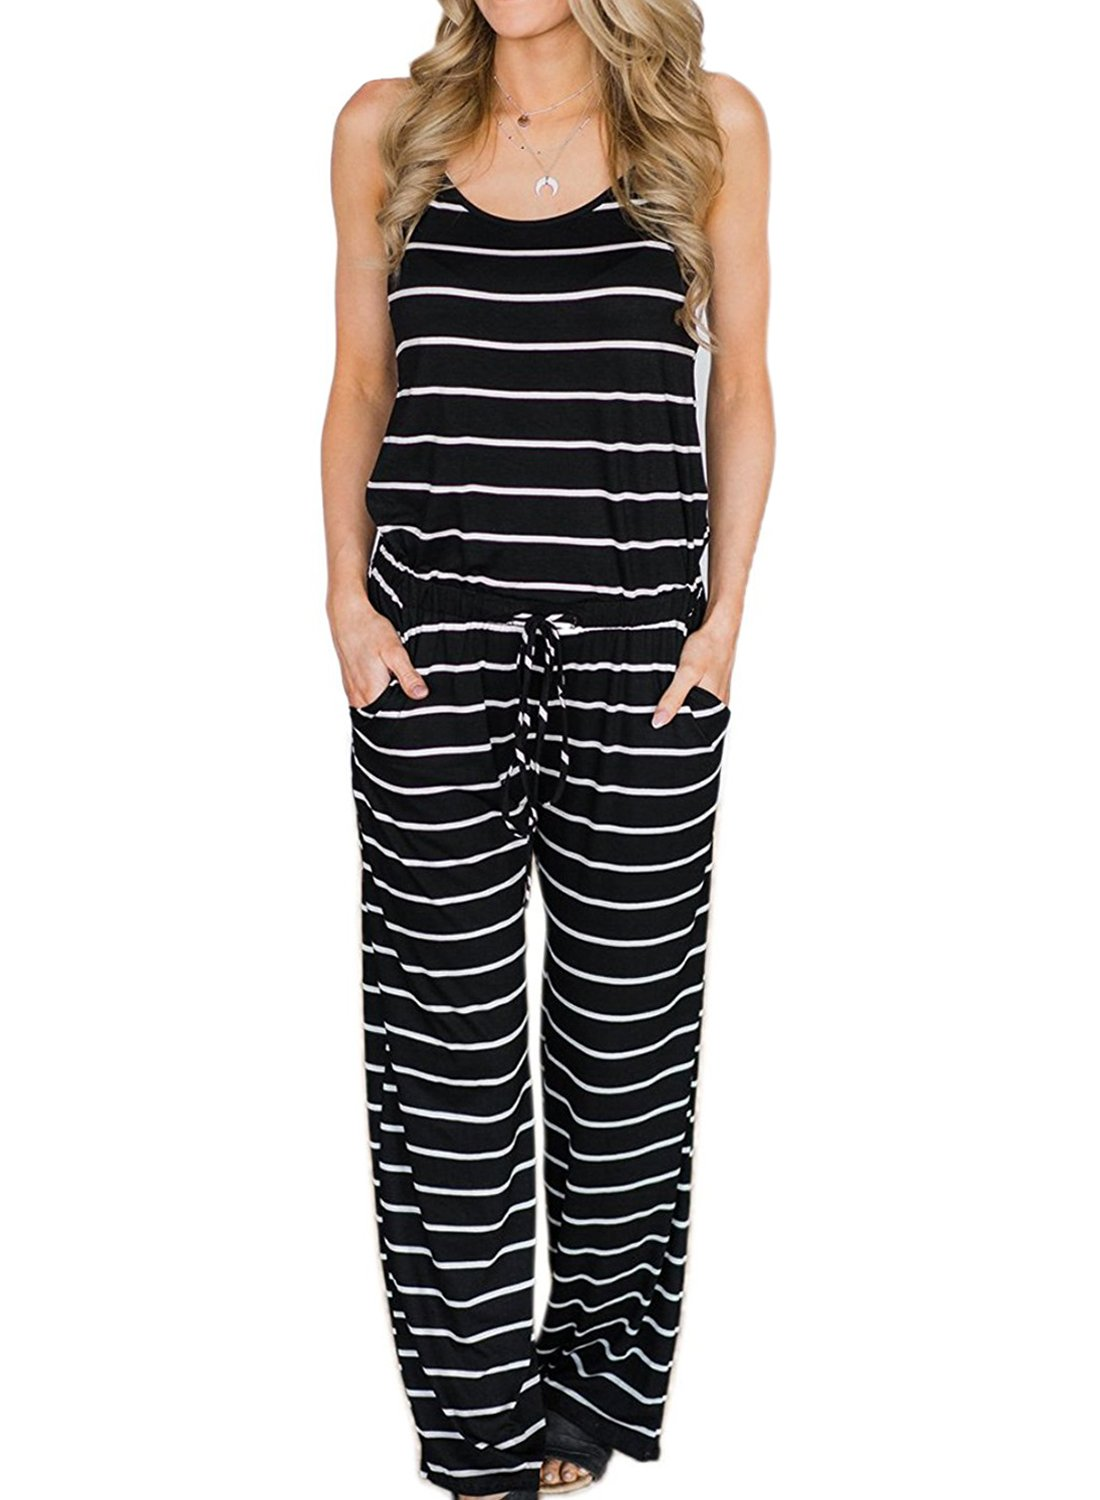 AMiERY Womens Black Jumpsuits Summer Comfy Striped One Piece Jumpsuits Casual Wide Leg Long Pants Loose Sleeveless Jumpsuits Rompers (S, Black Stripes)